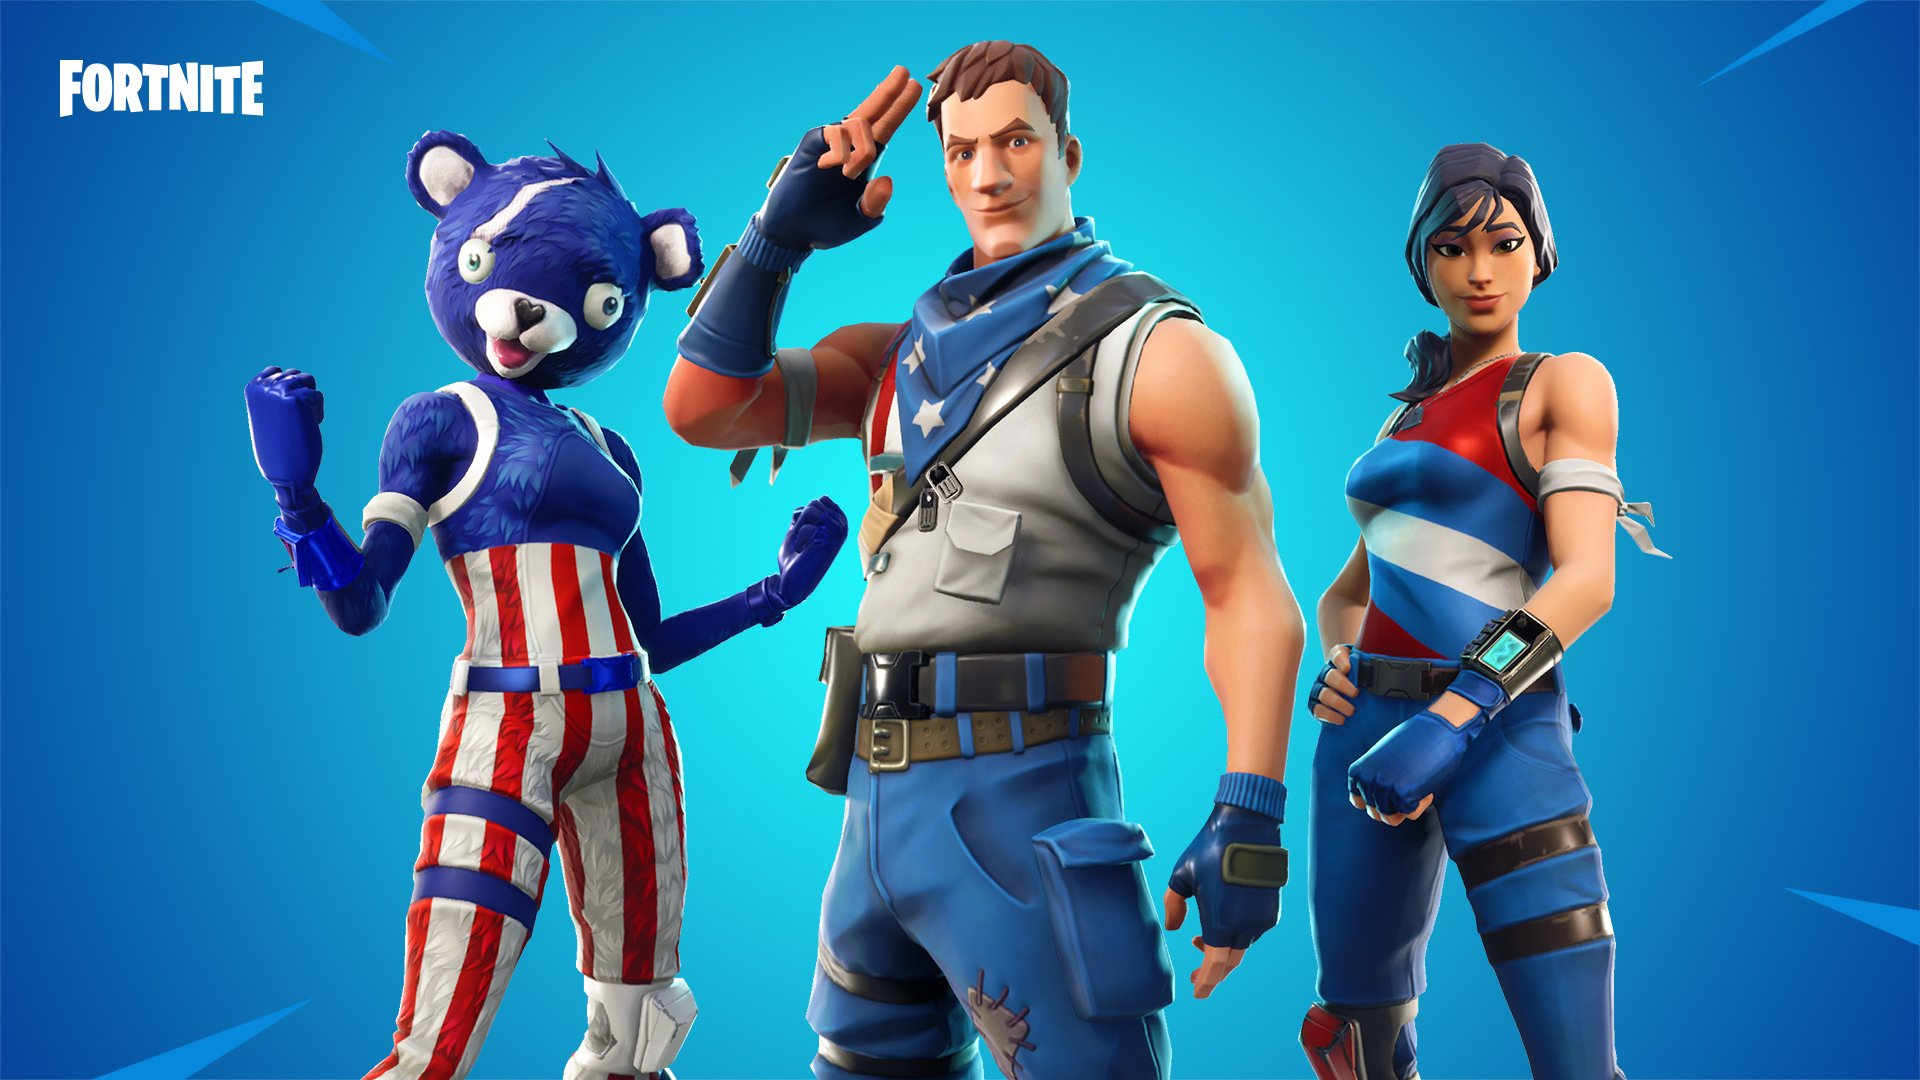 Fortnite On Twitter Celebrate Summer With The New Stars And